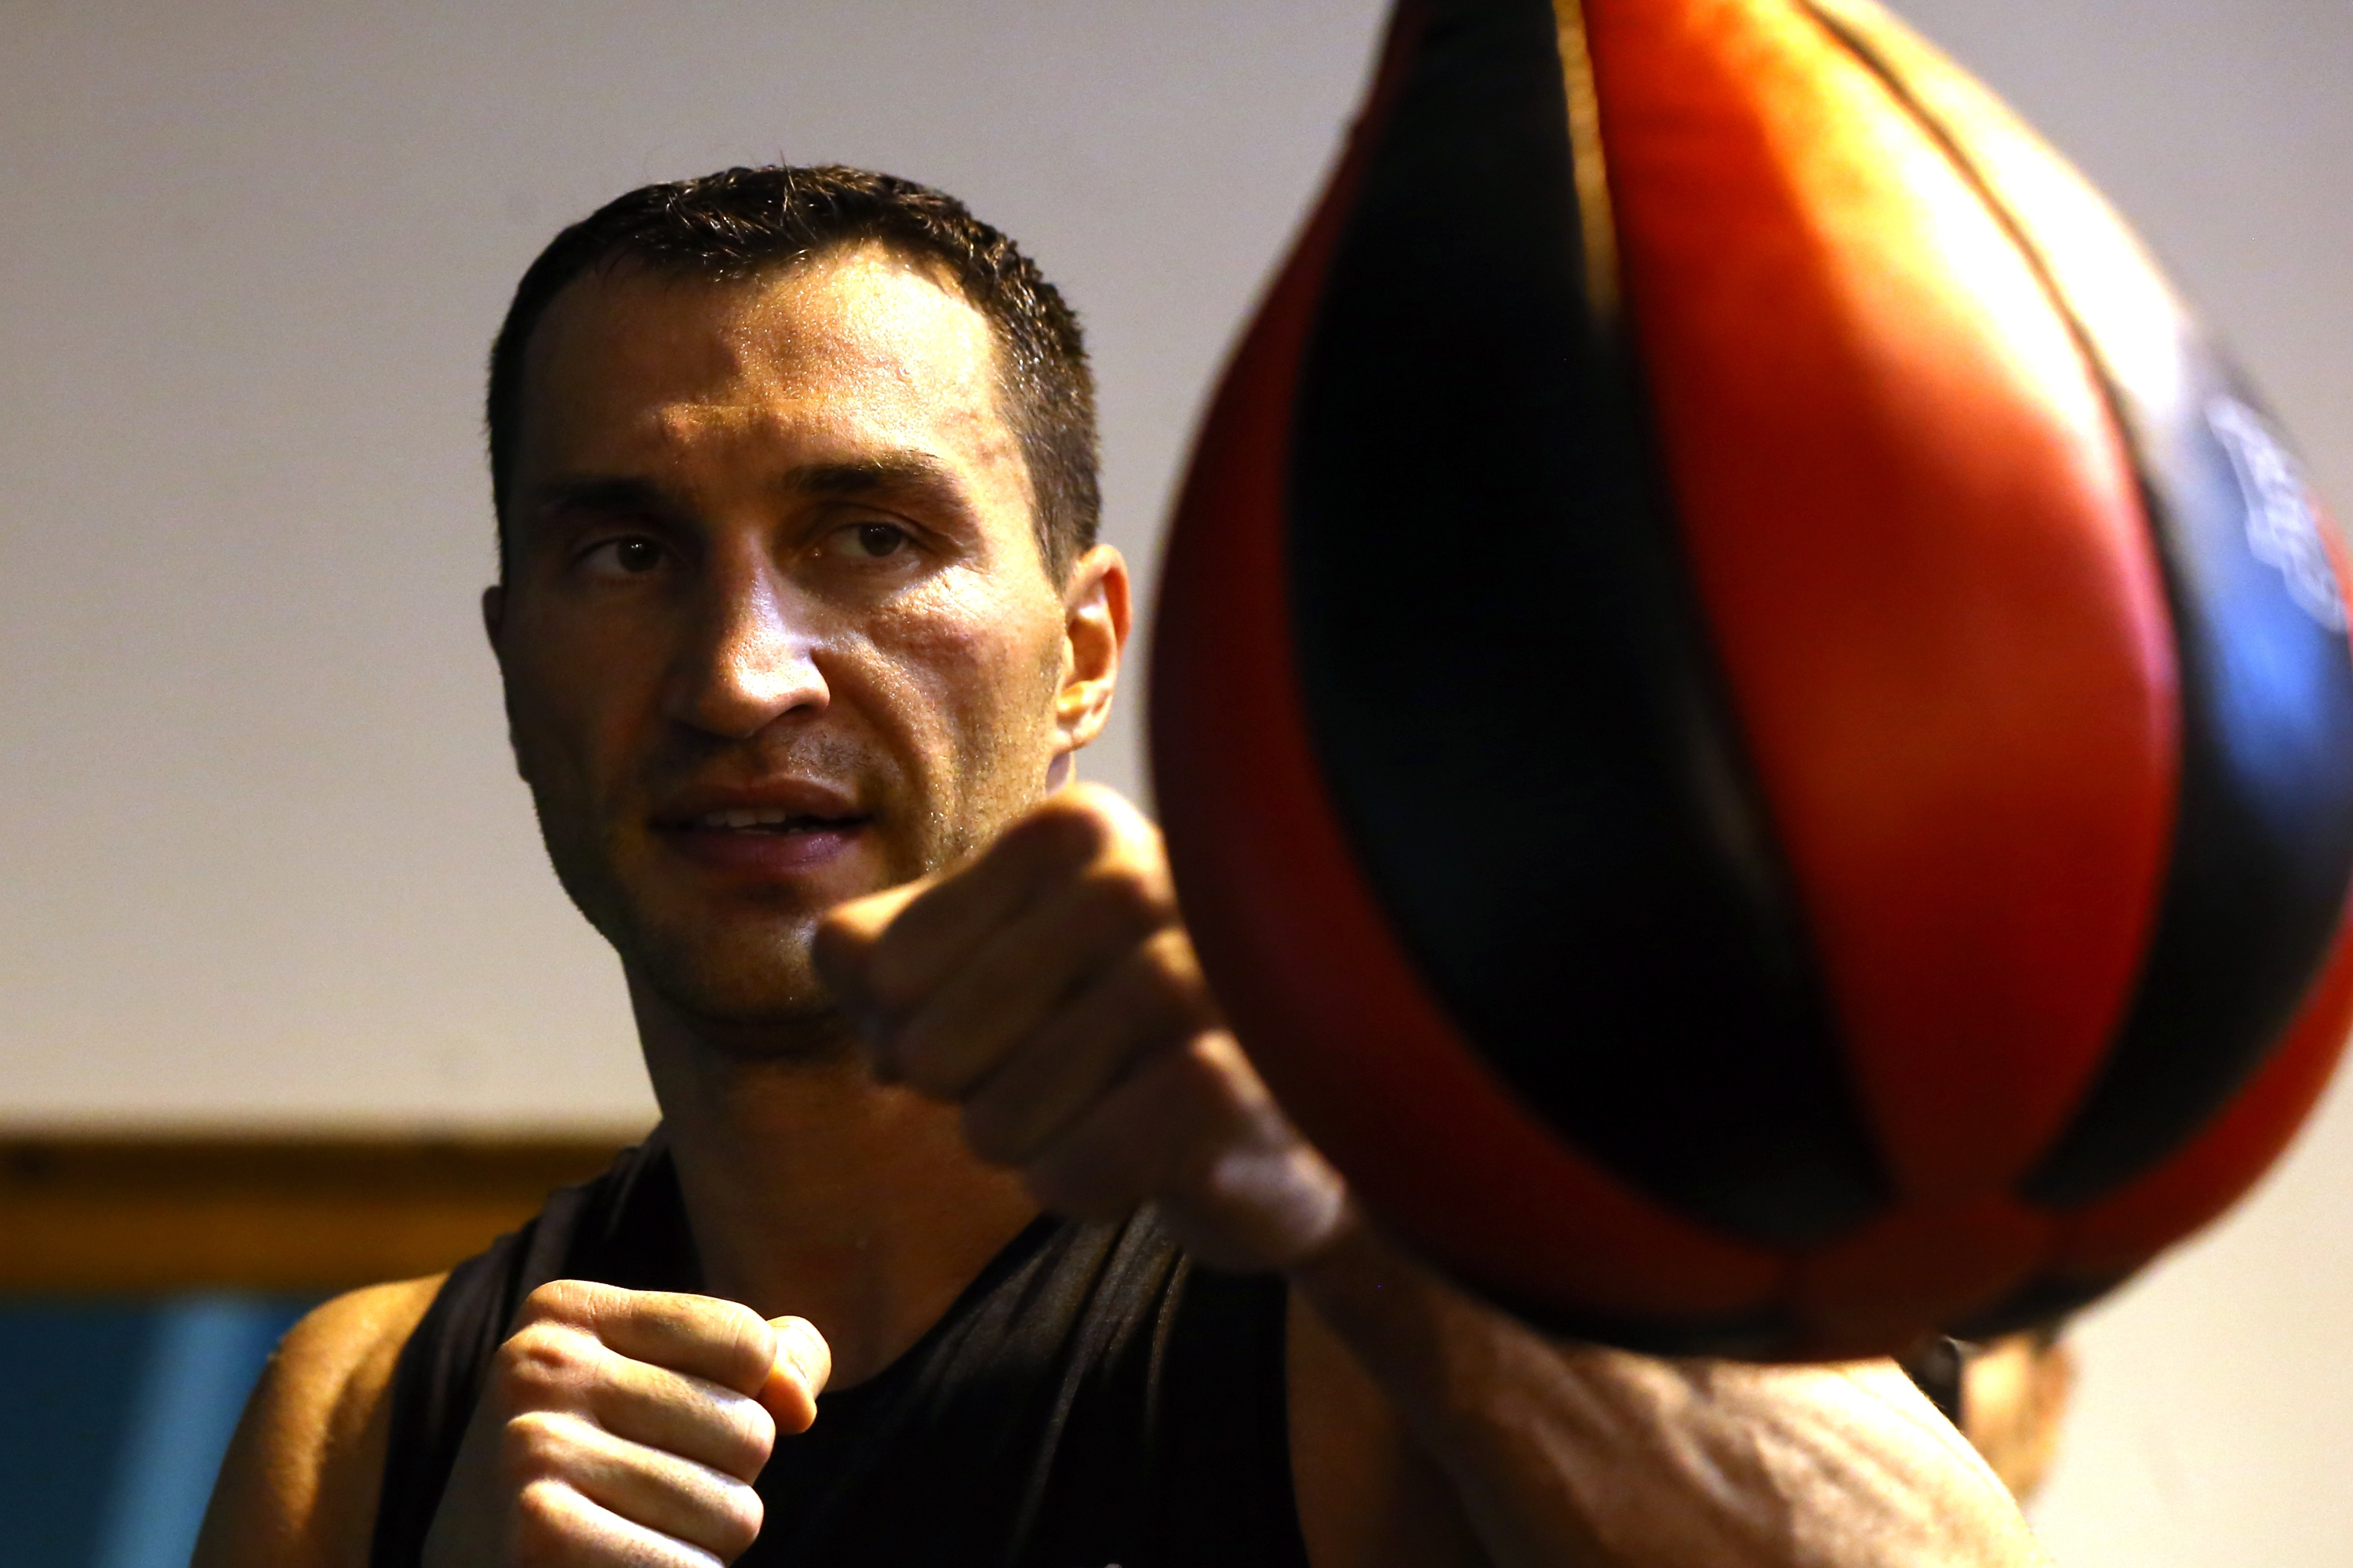 Wladimir Klitschko Media Day